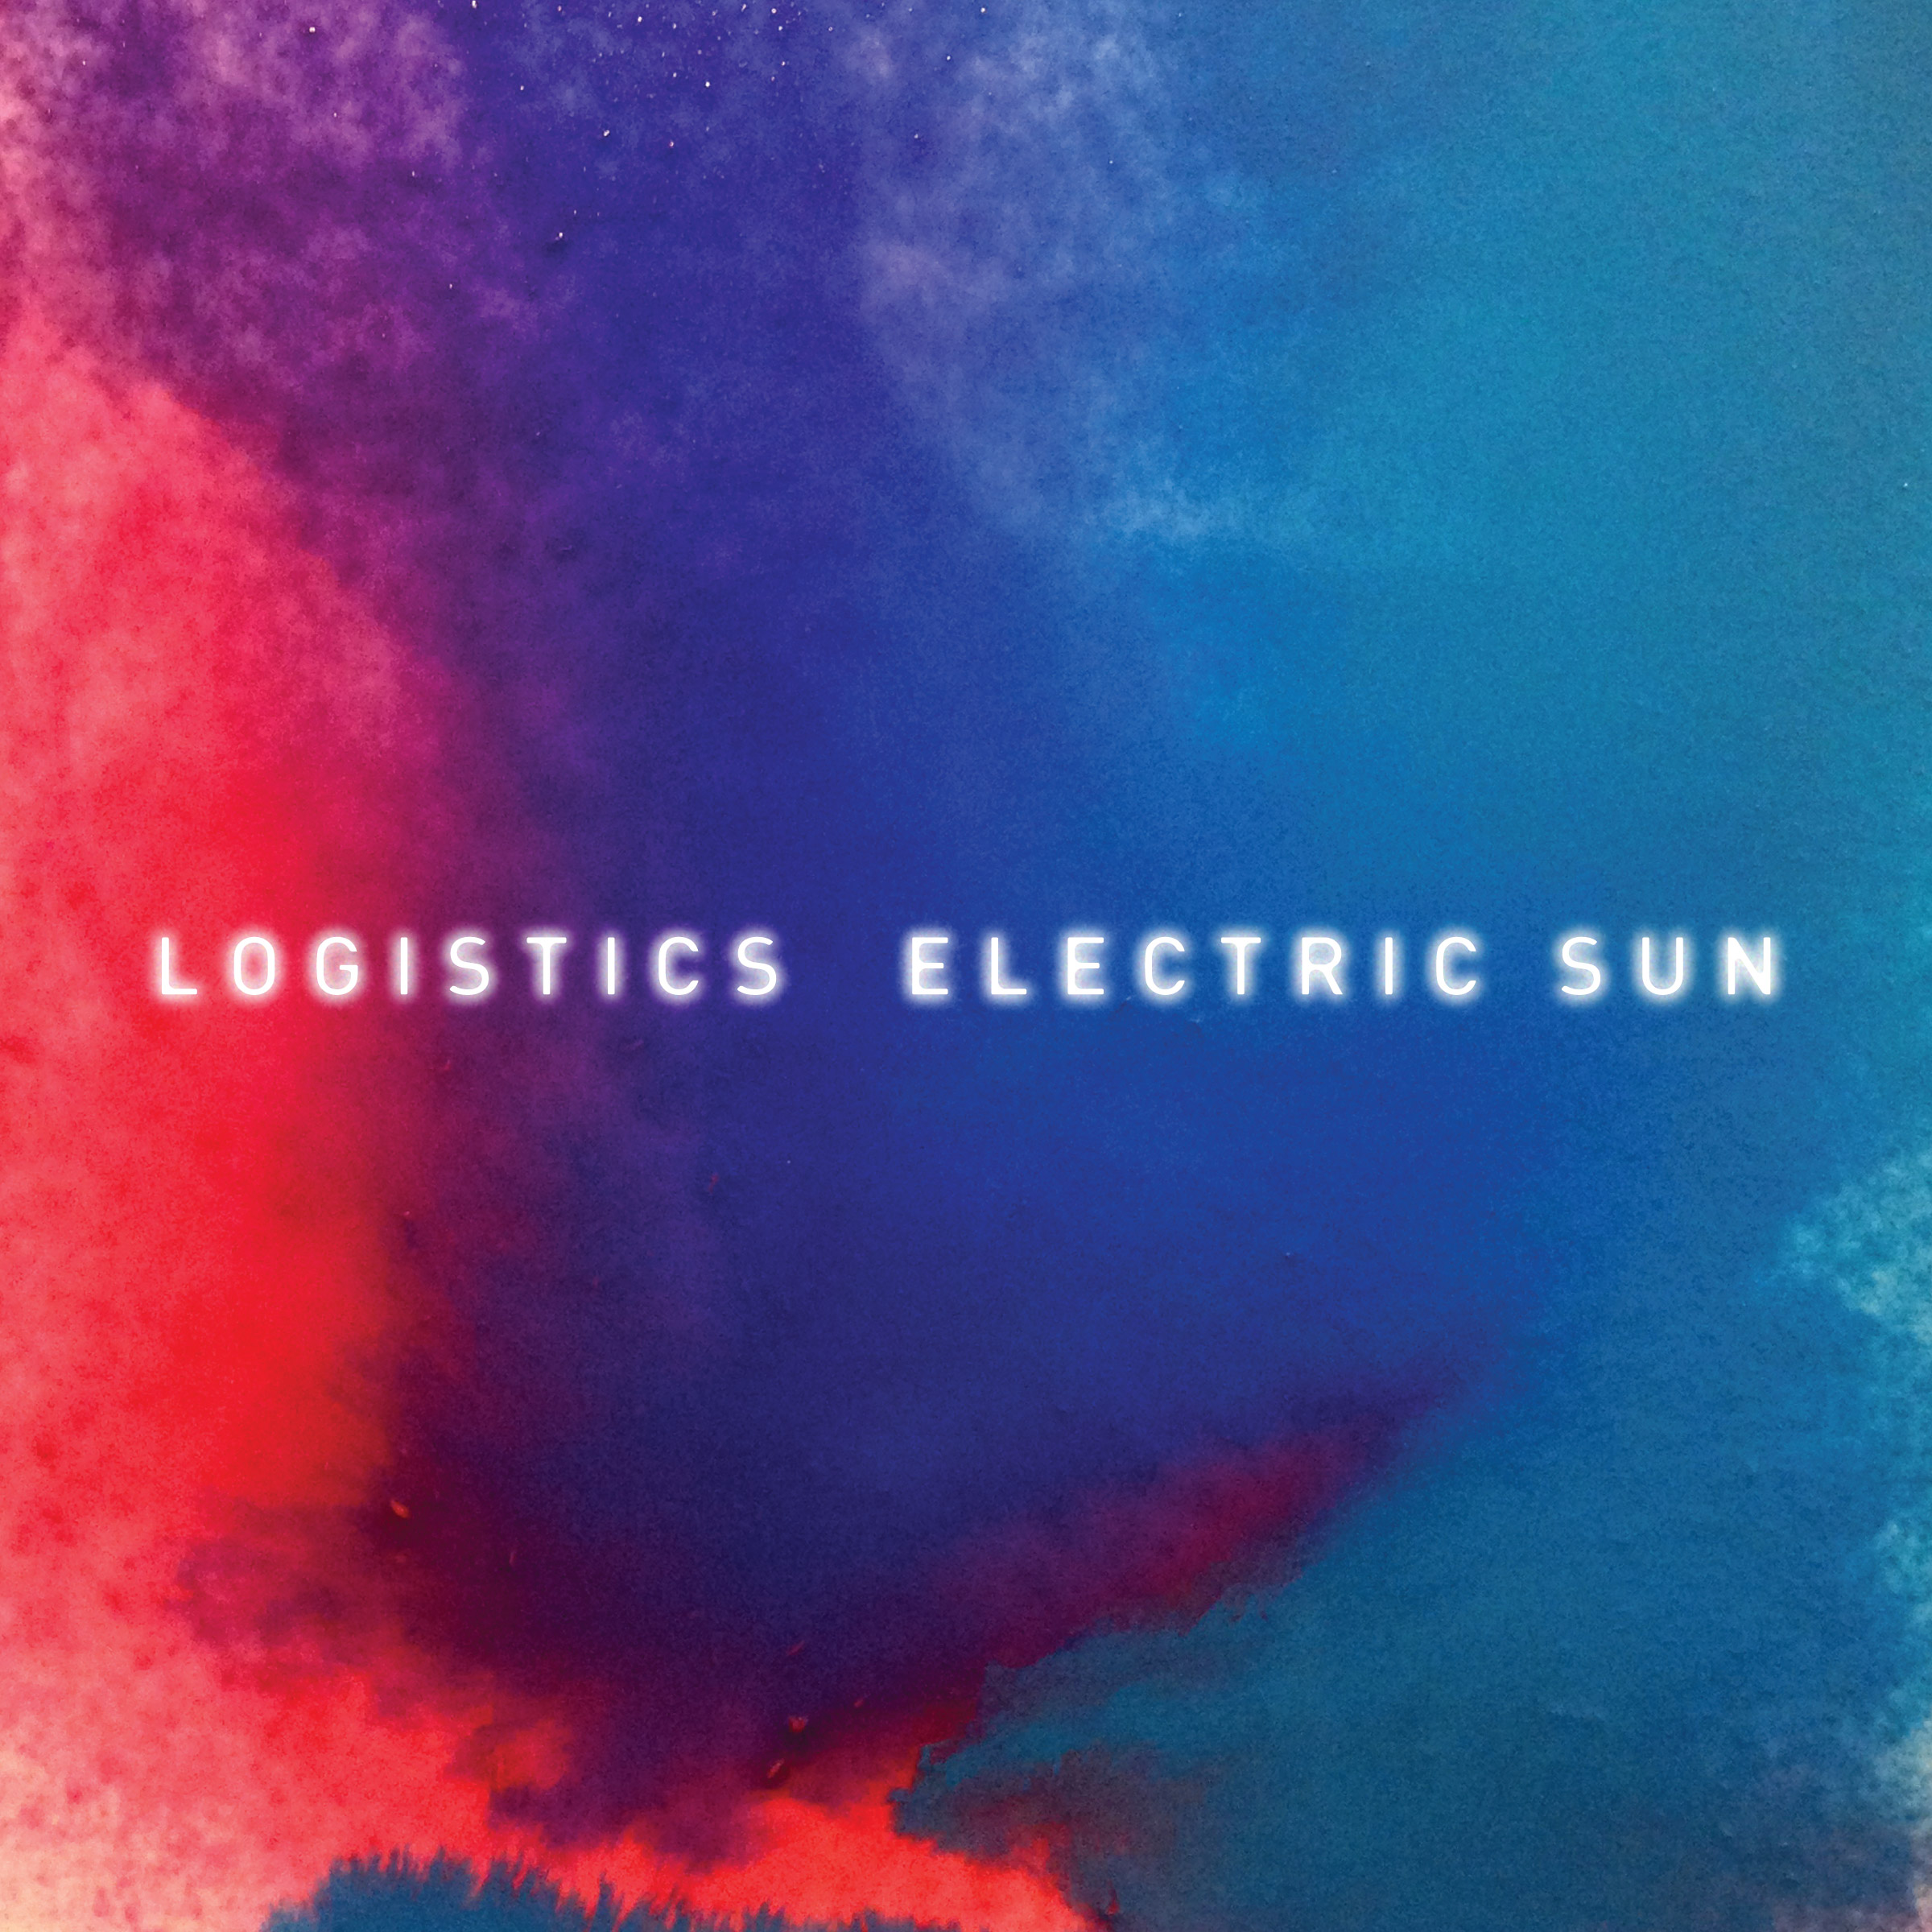 Logistics/ELECTRIC SUN CD